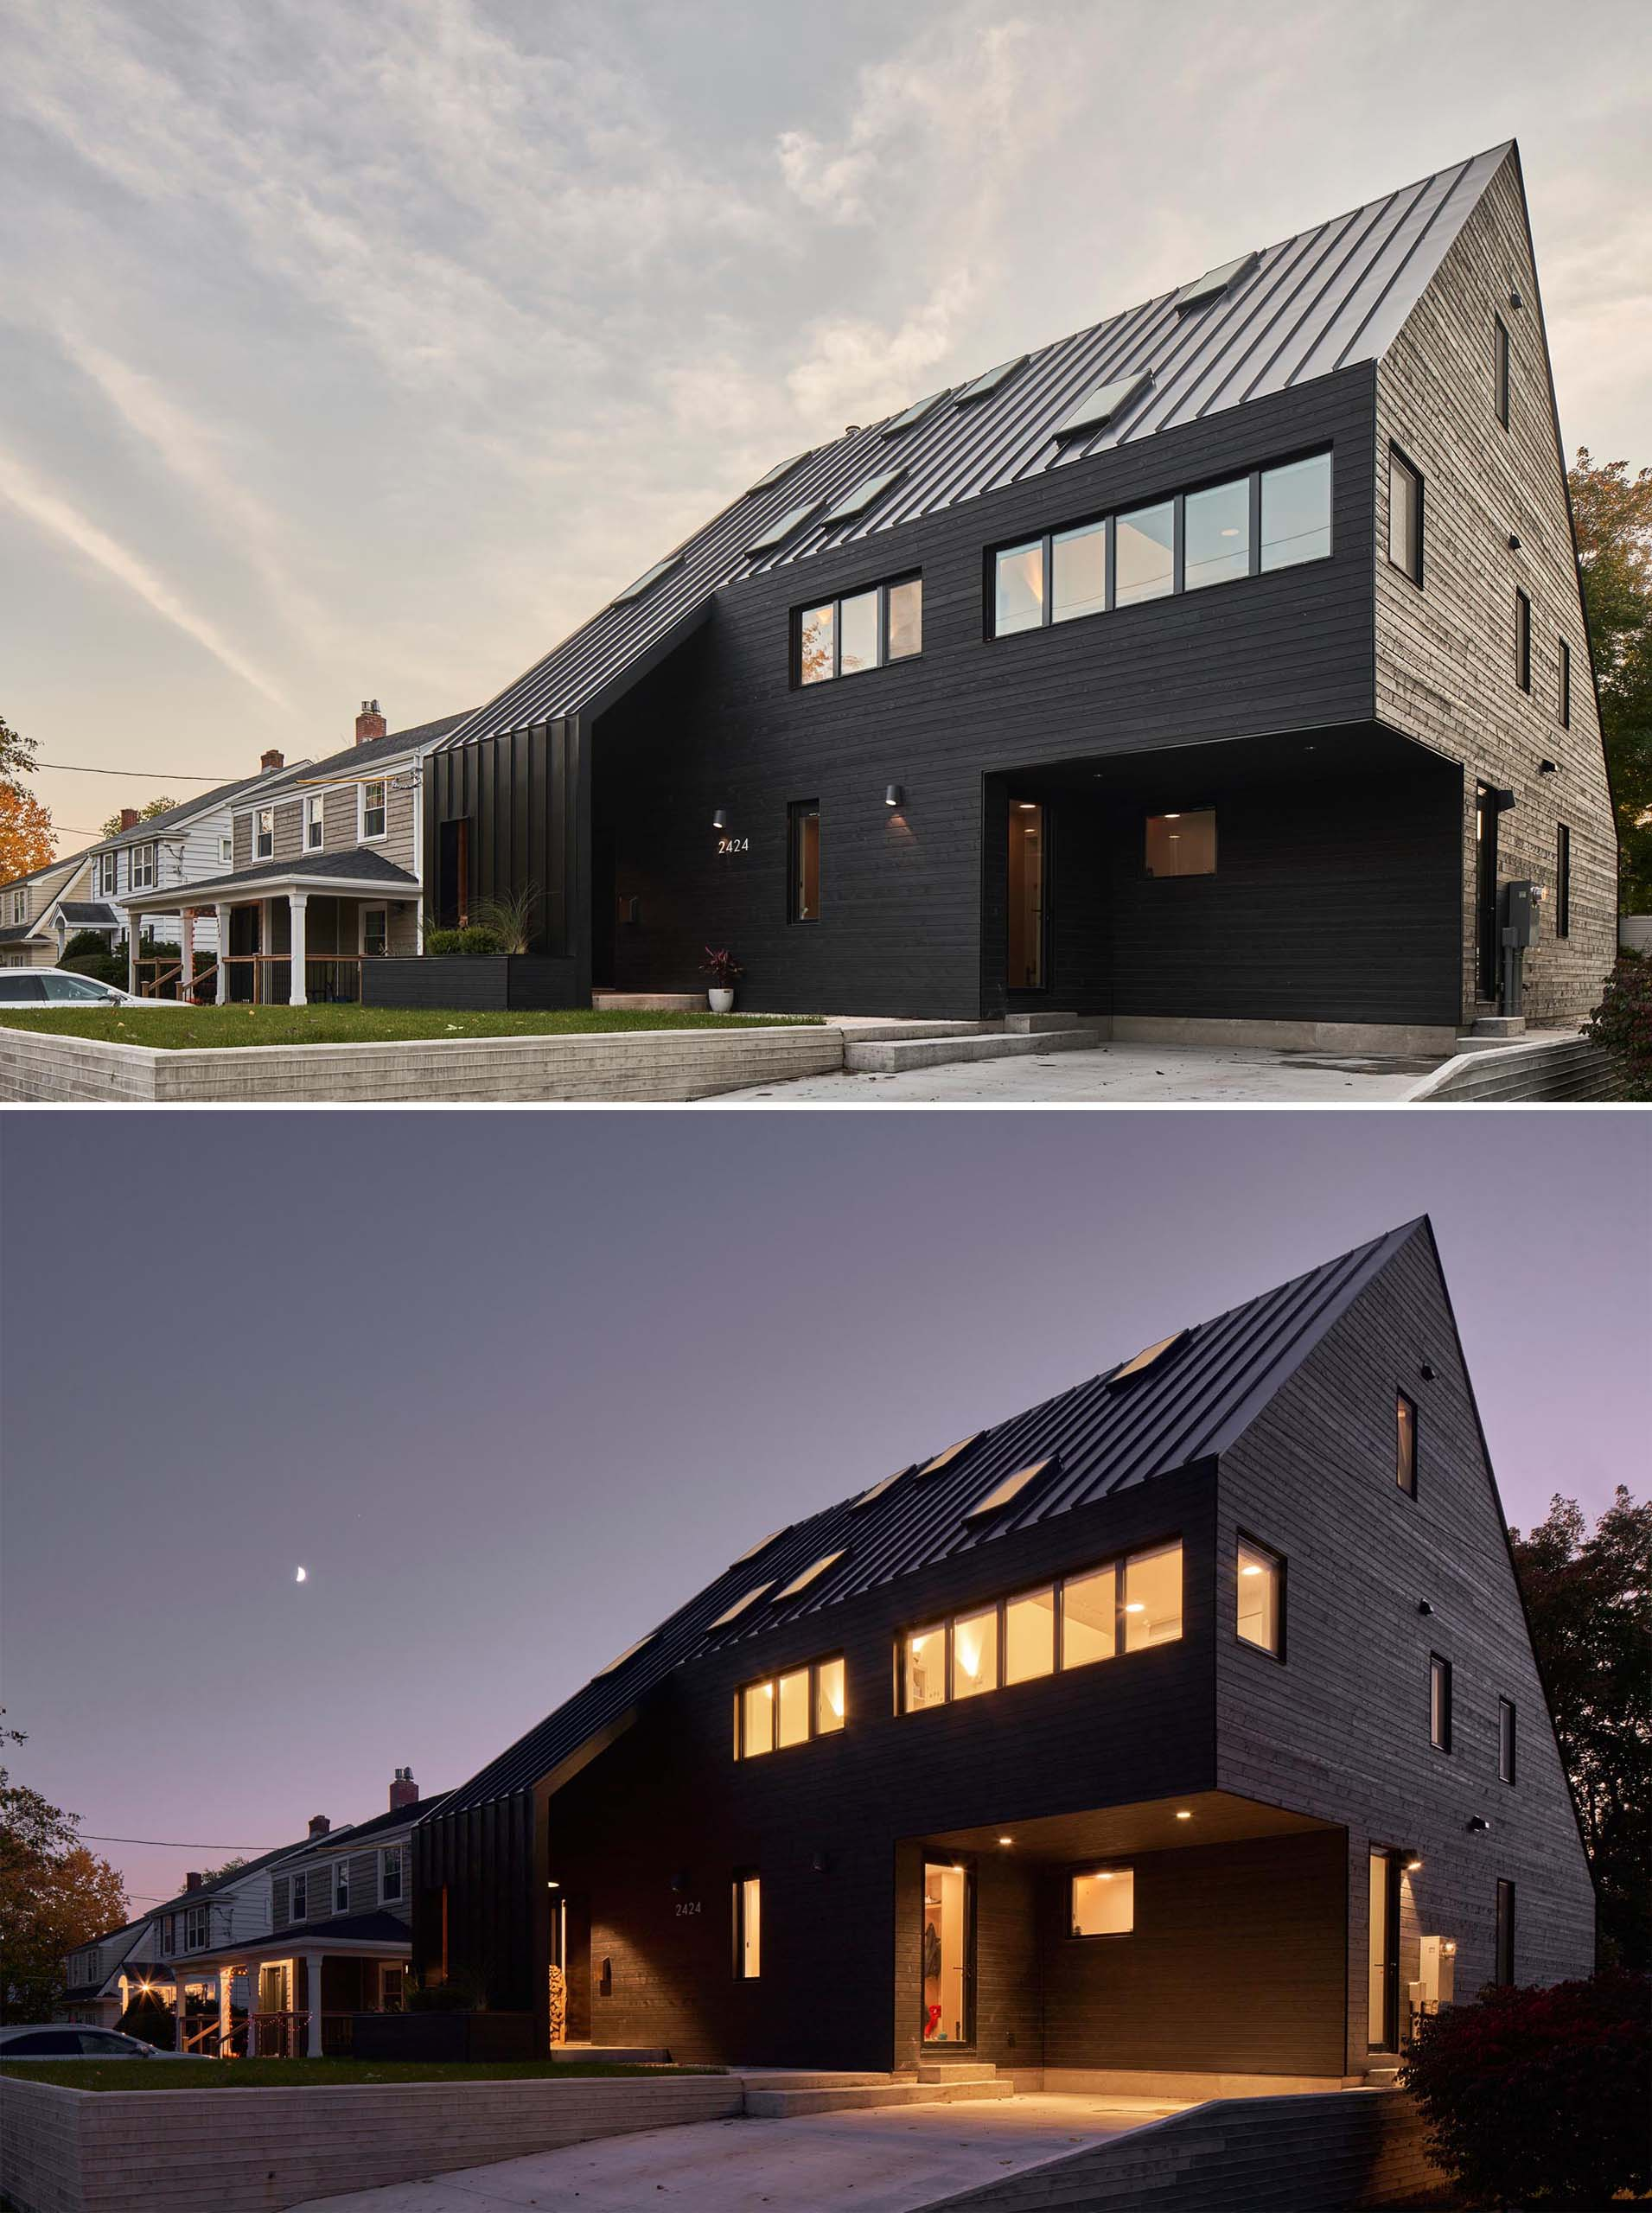 A modern black house with wood siding and a standing seam metal roof, as well as black window frames.